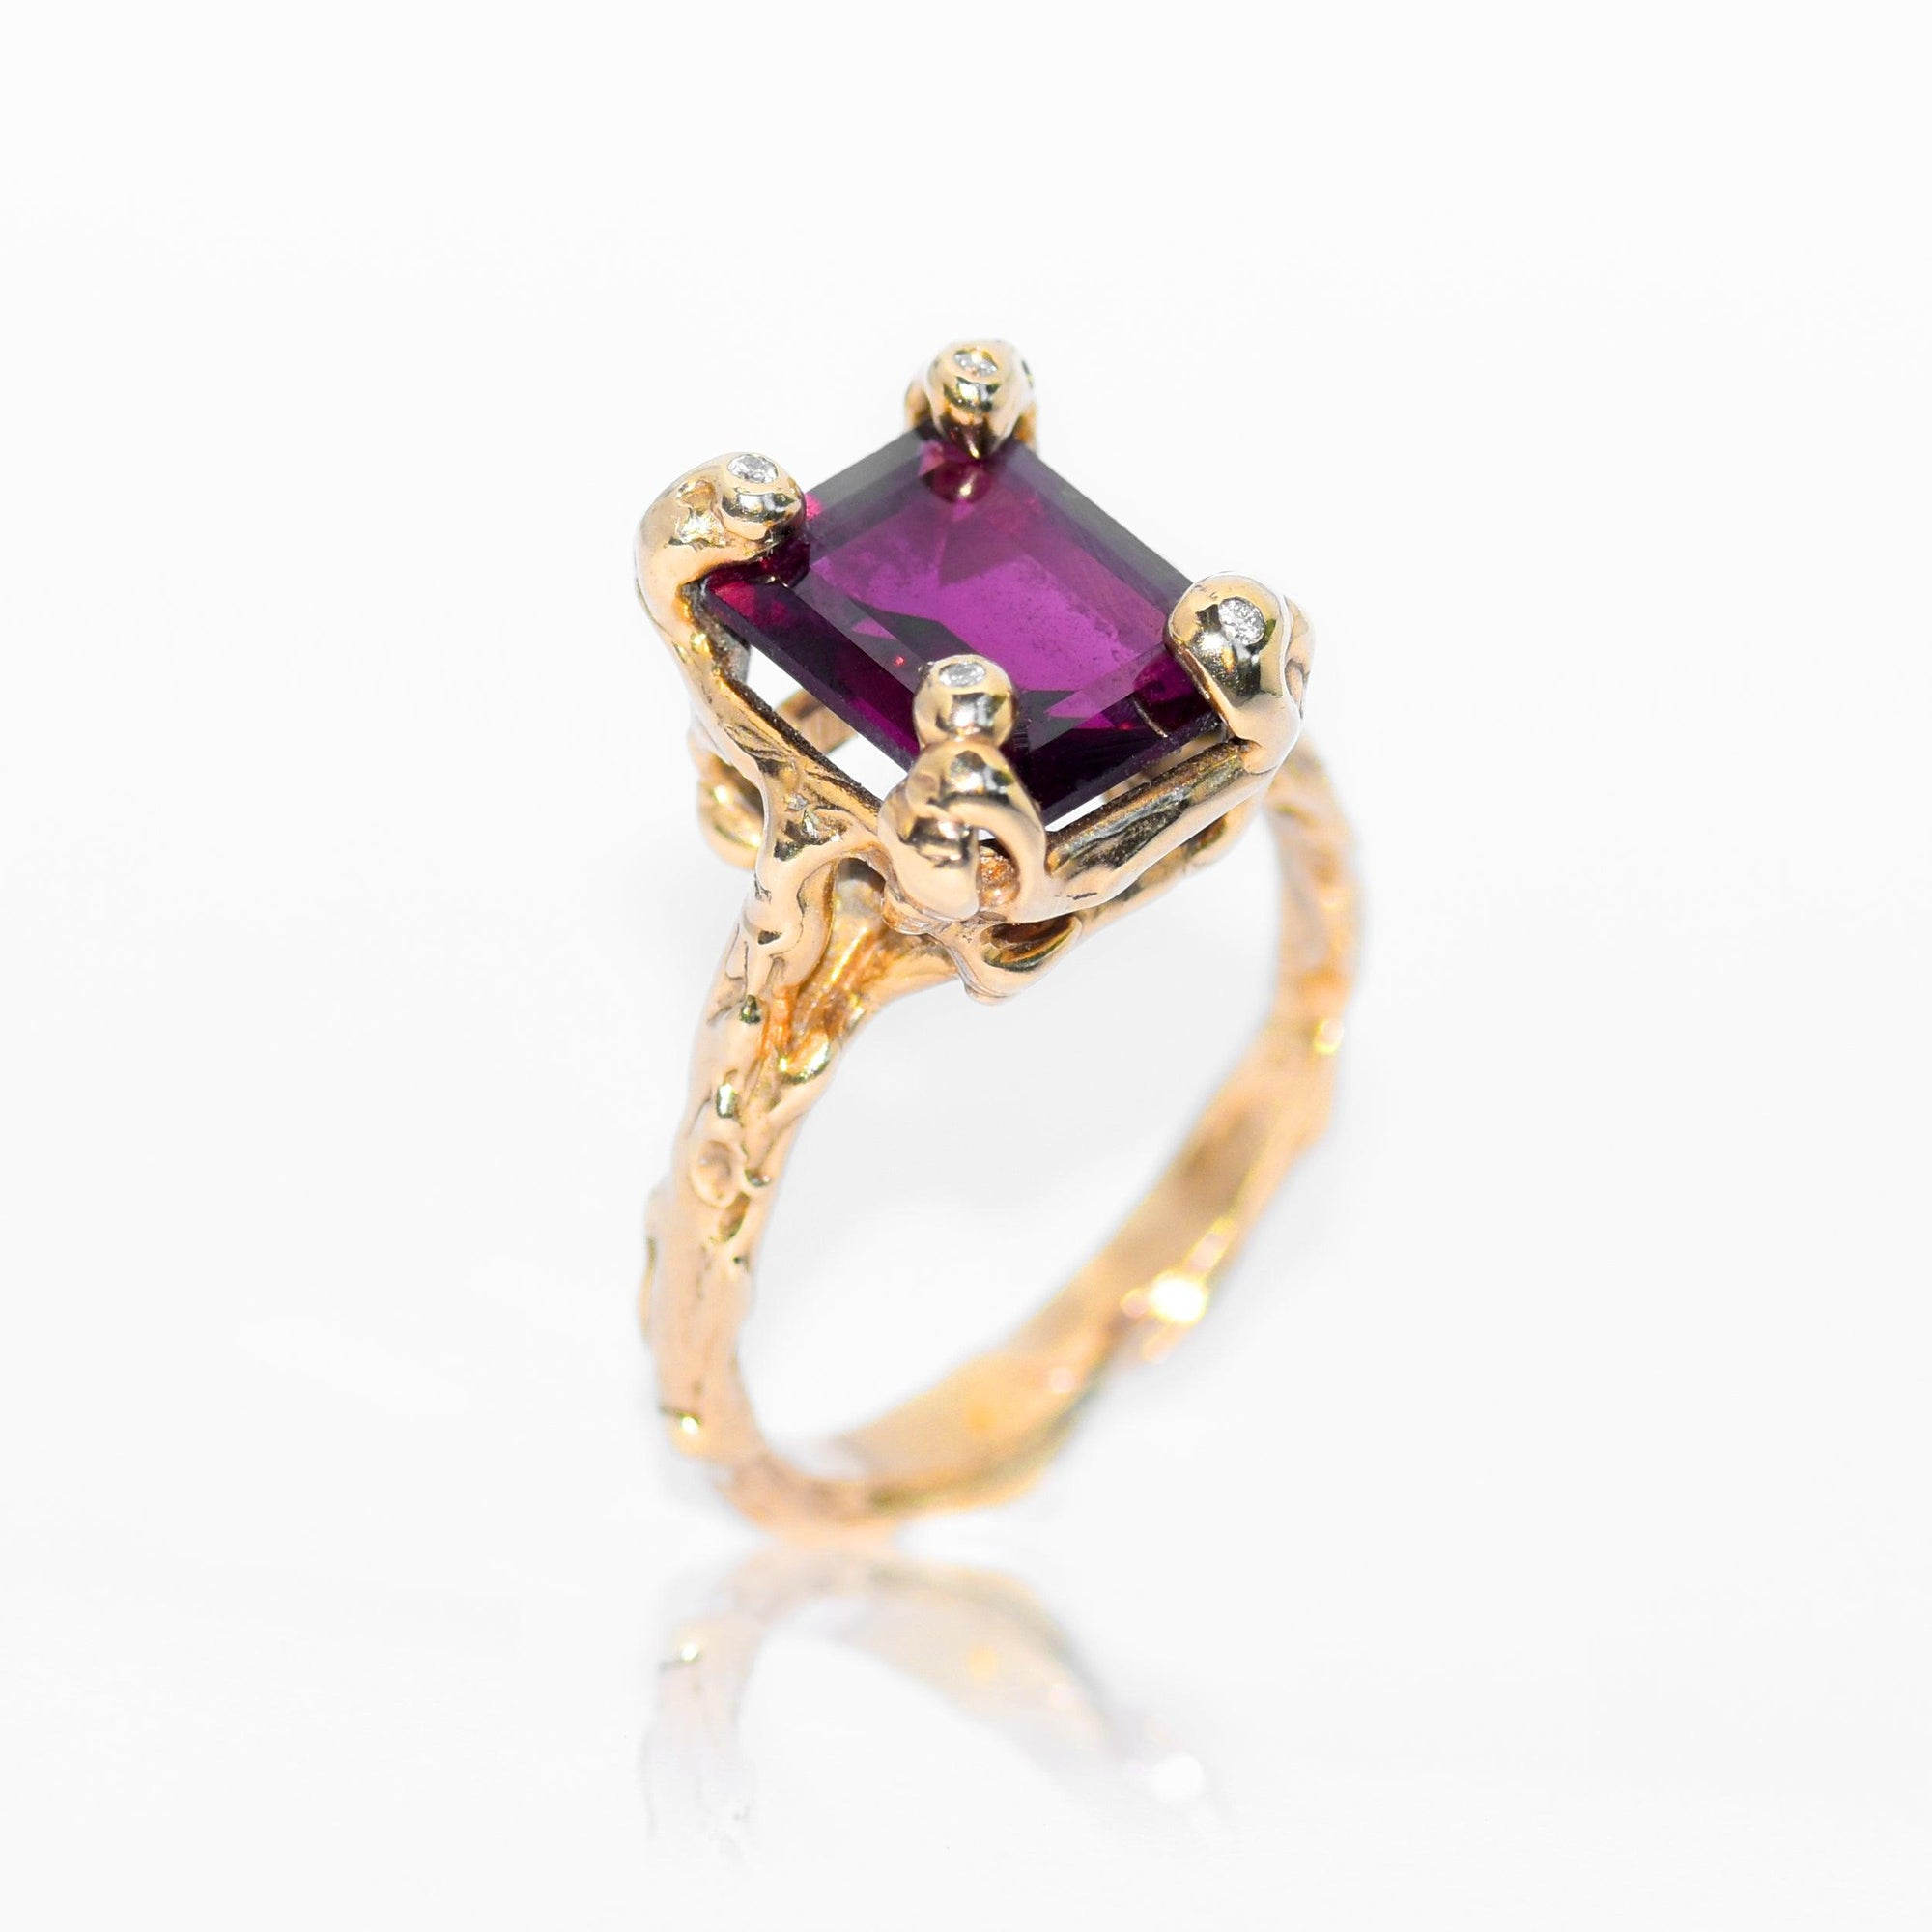 Gold ring set with Garnet and diamonds